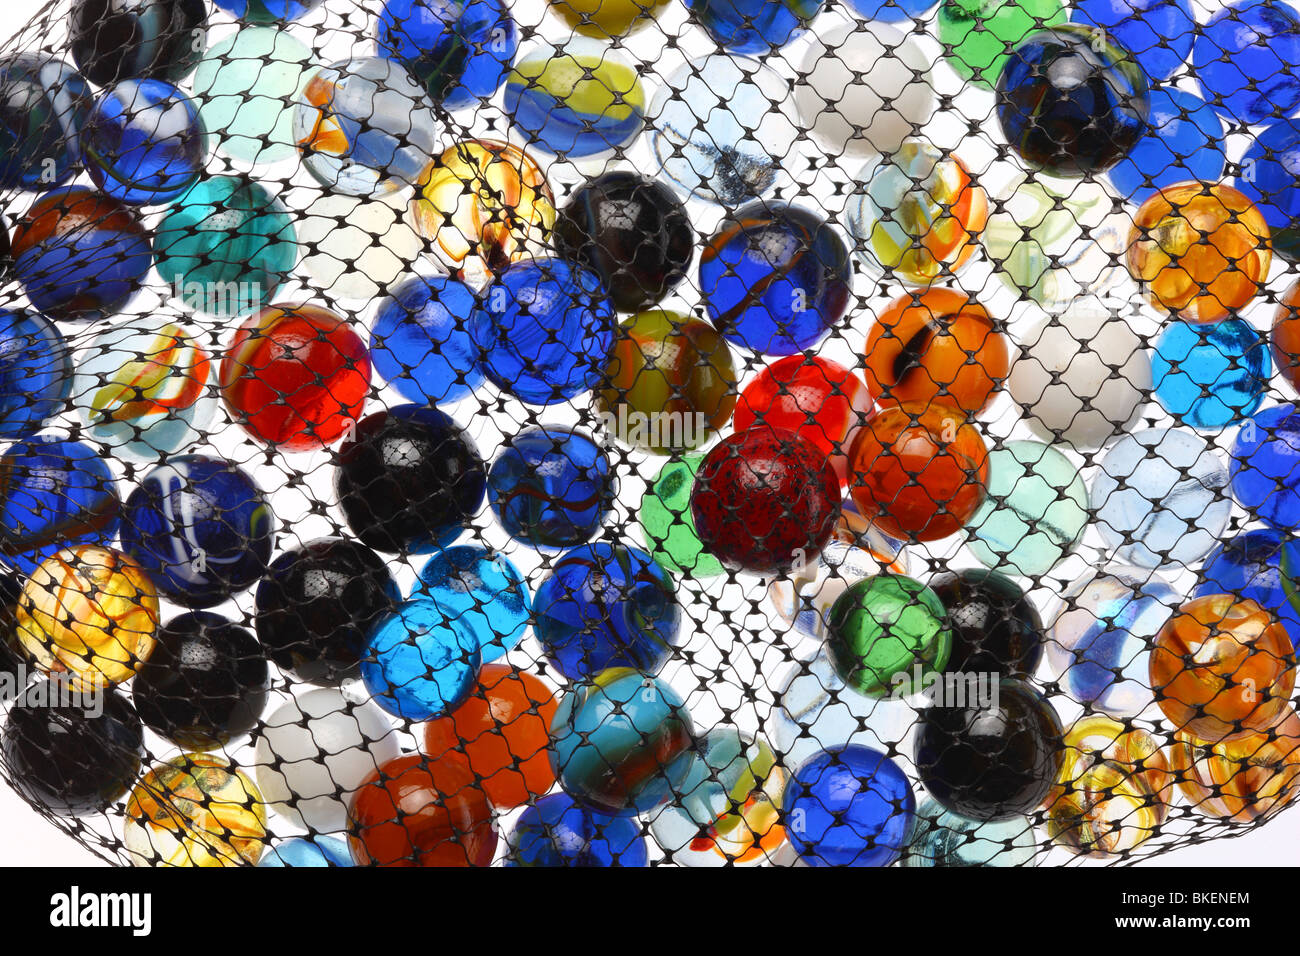 glass marbles, colorful - Stock Image